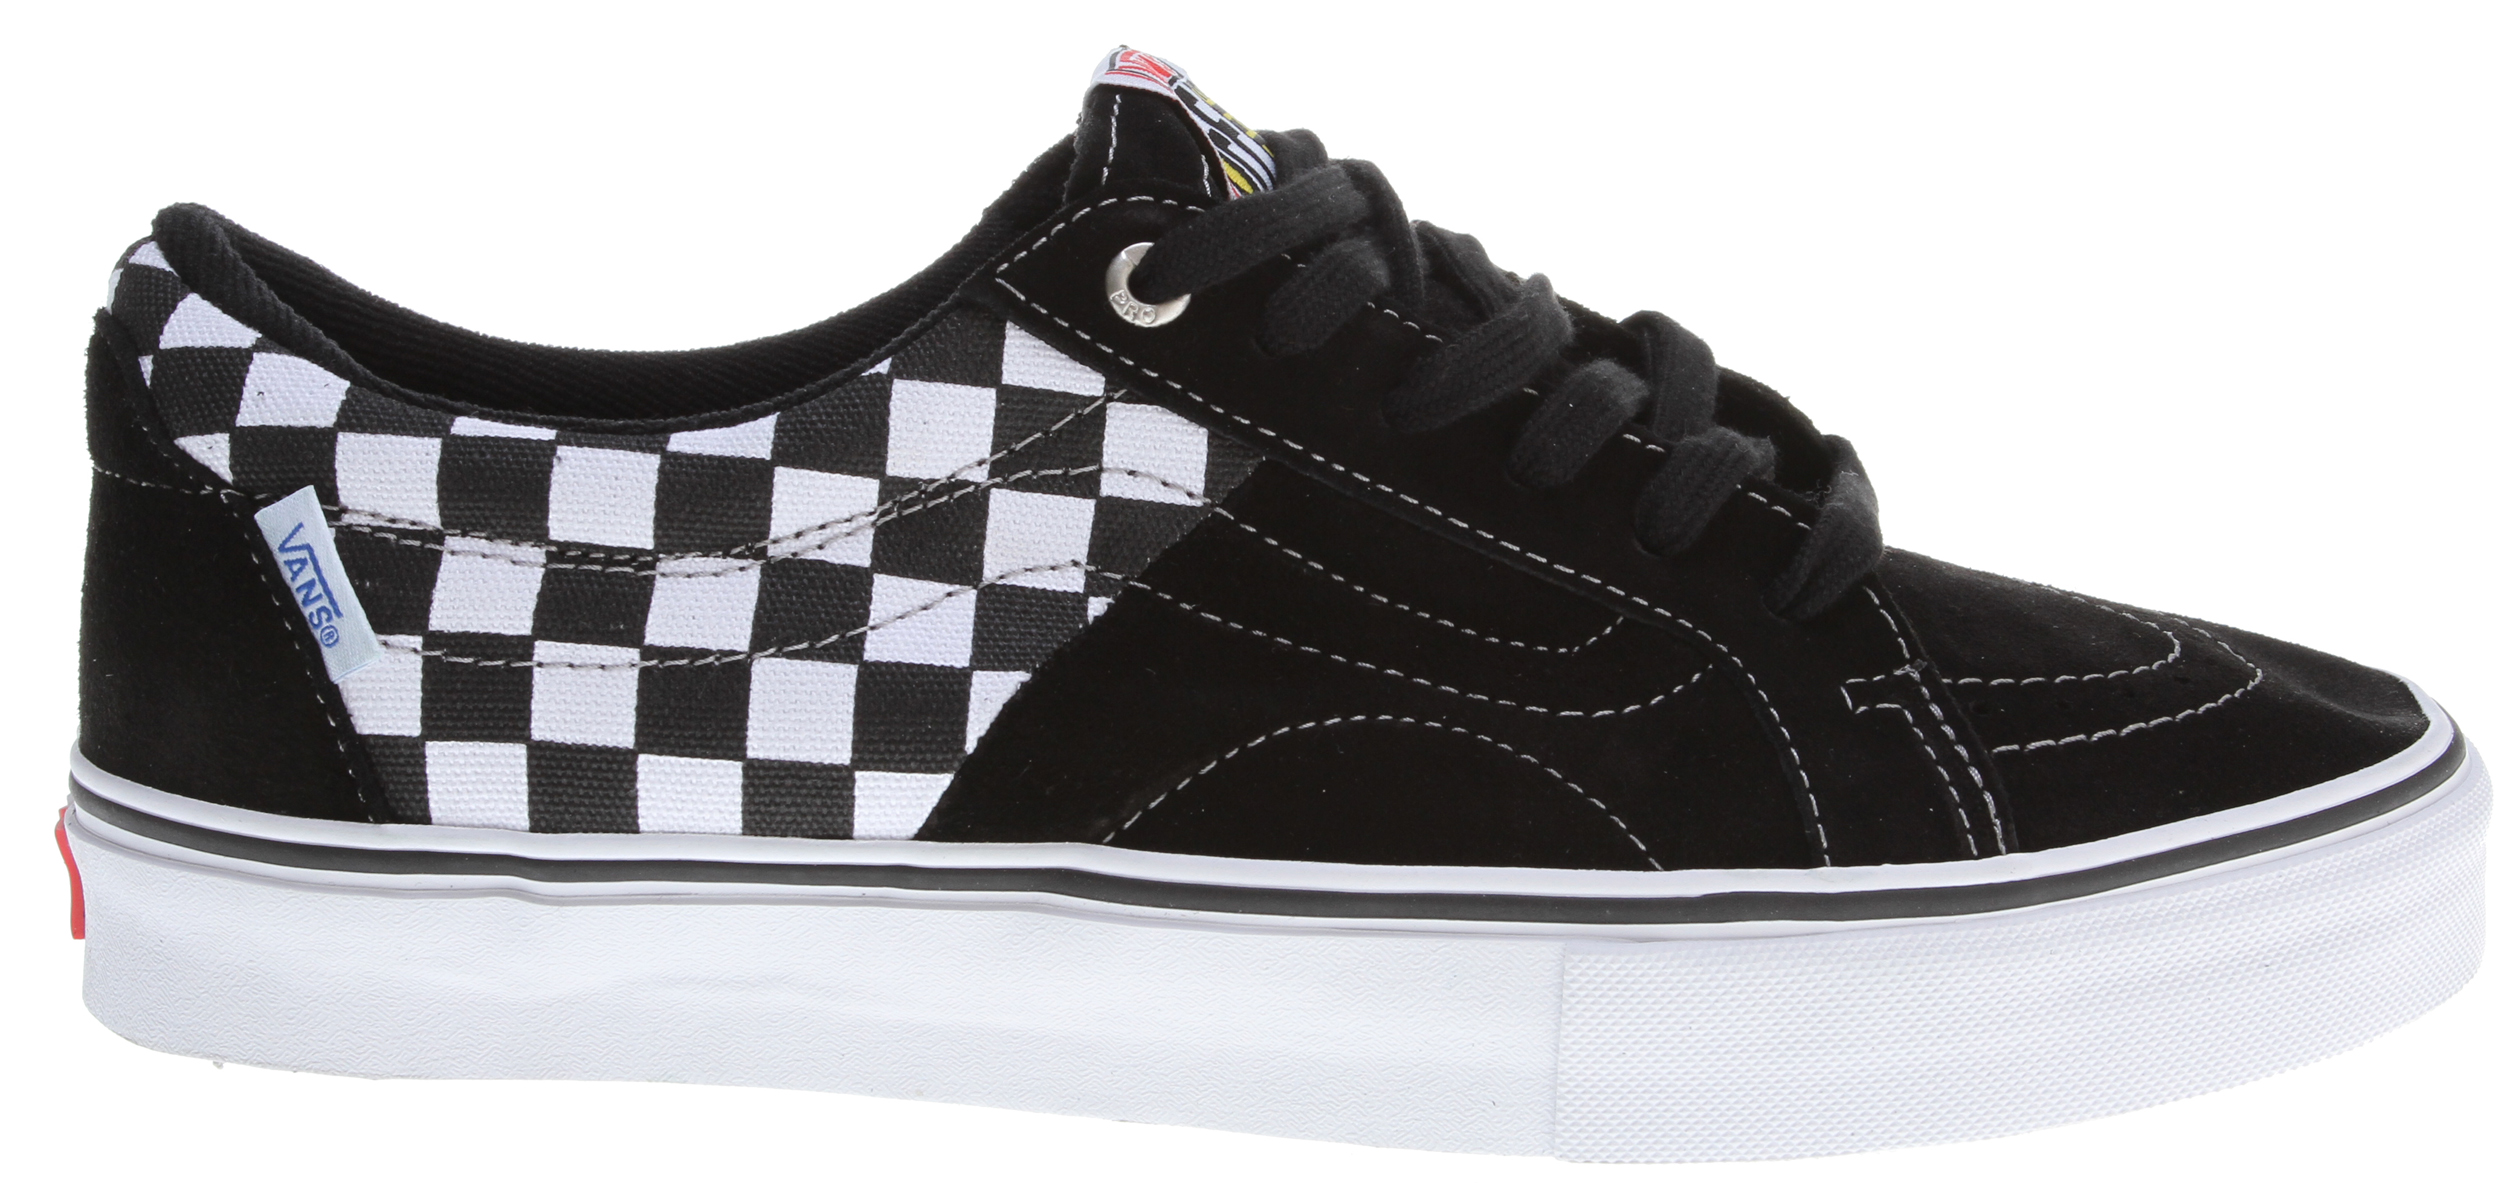 Skateboard Key Features of the Vans AV Native American Low Skate Shoes: PRO VULC Construction ORTHOLITE Cushioning Vans ORIGINAL WAFFLE Outsole FLEX & FIT Upper - $41.95